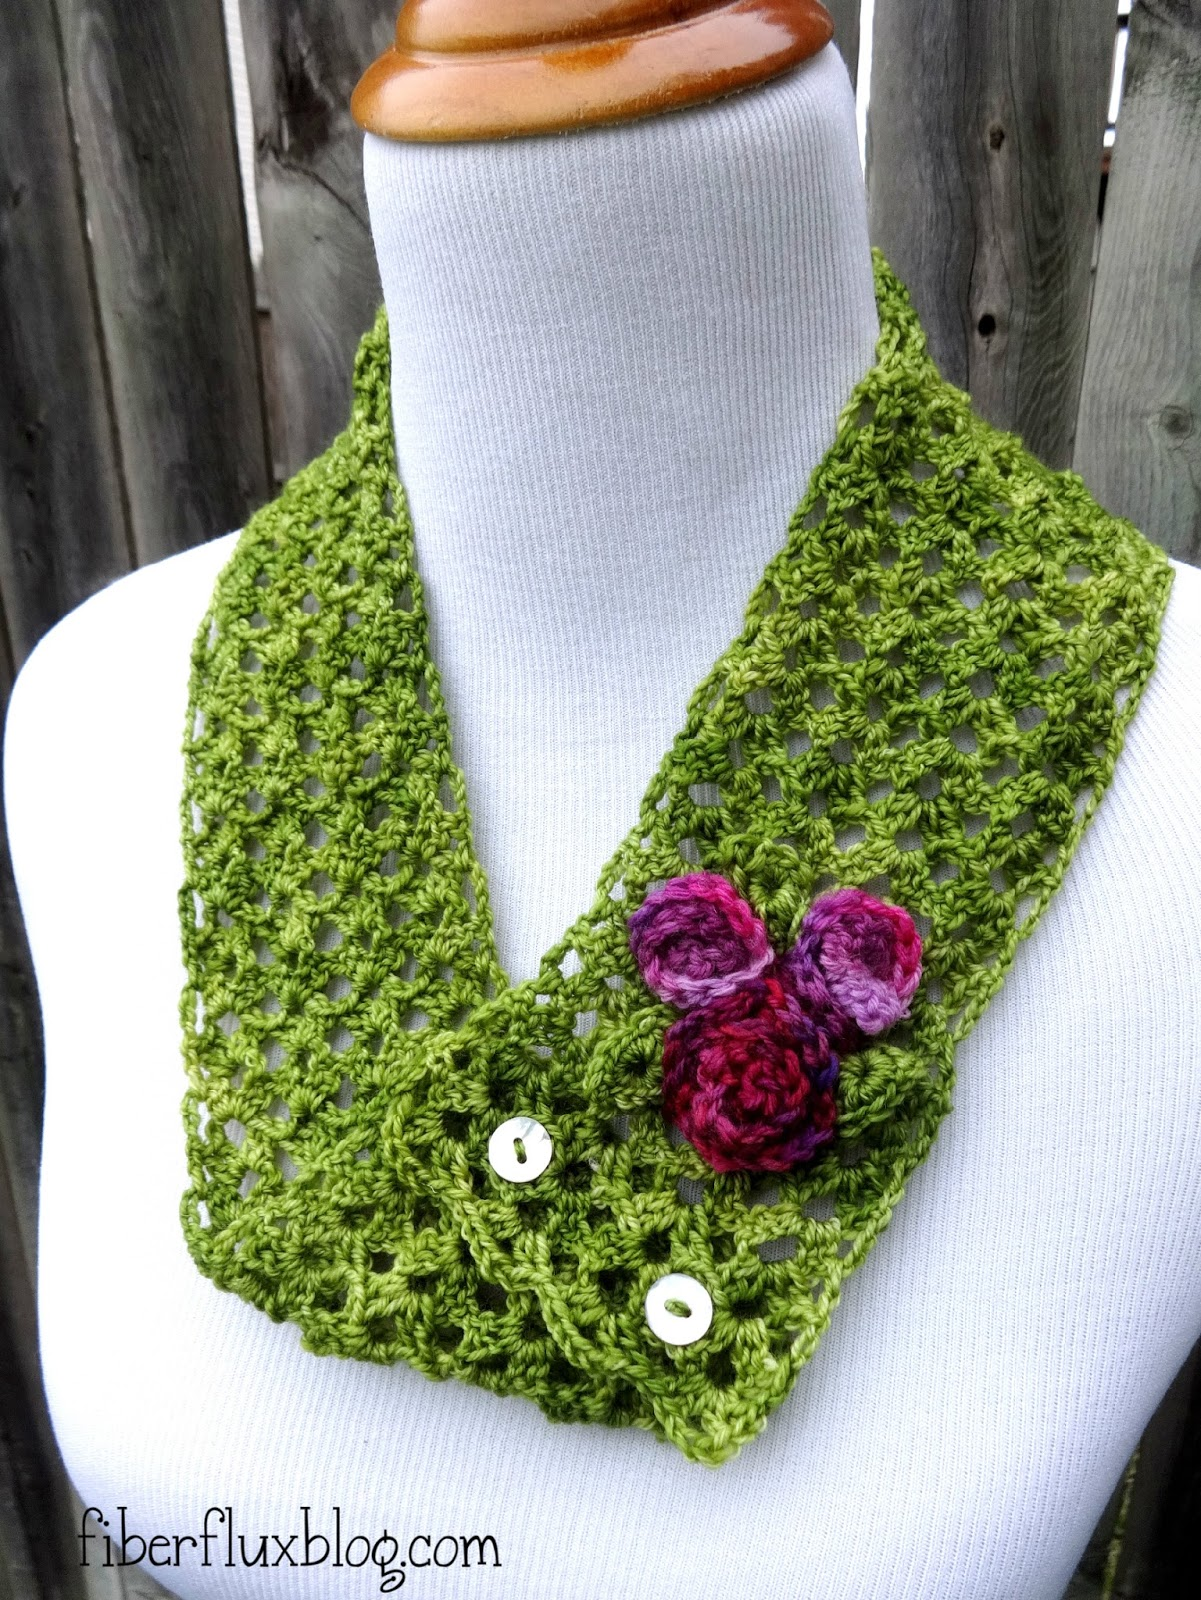 Crochet Patterns Vintage : Fiber Flux: Free Crochet Pattern...Vintage Corsage Cowl